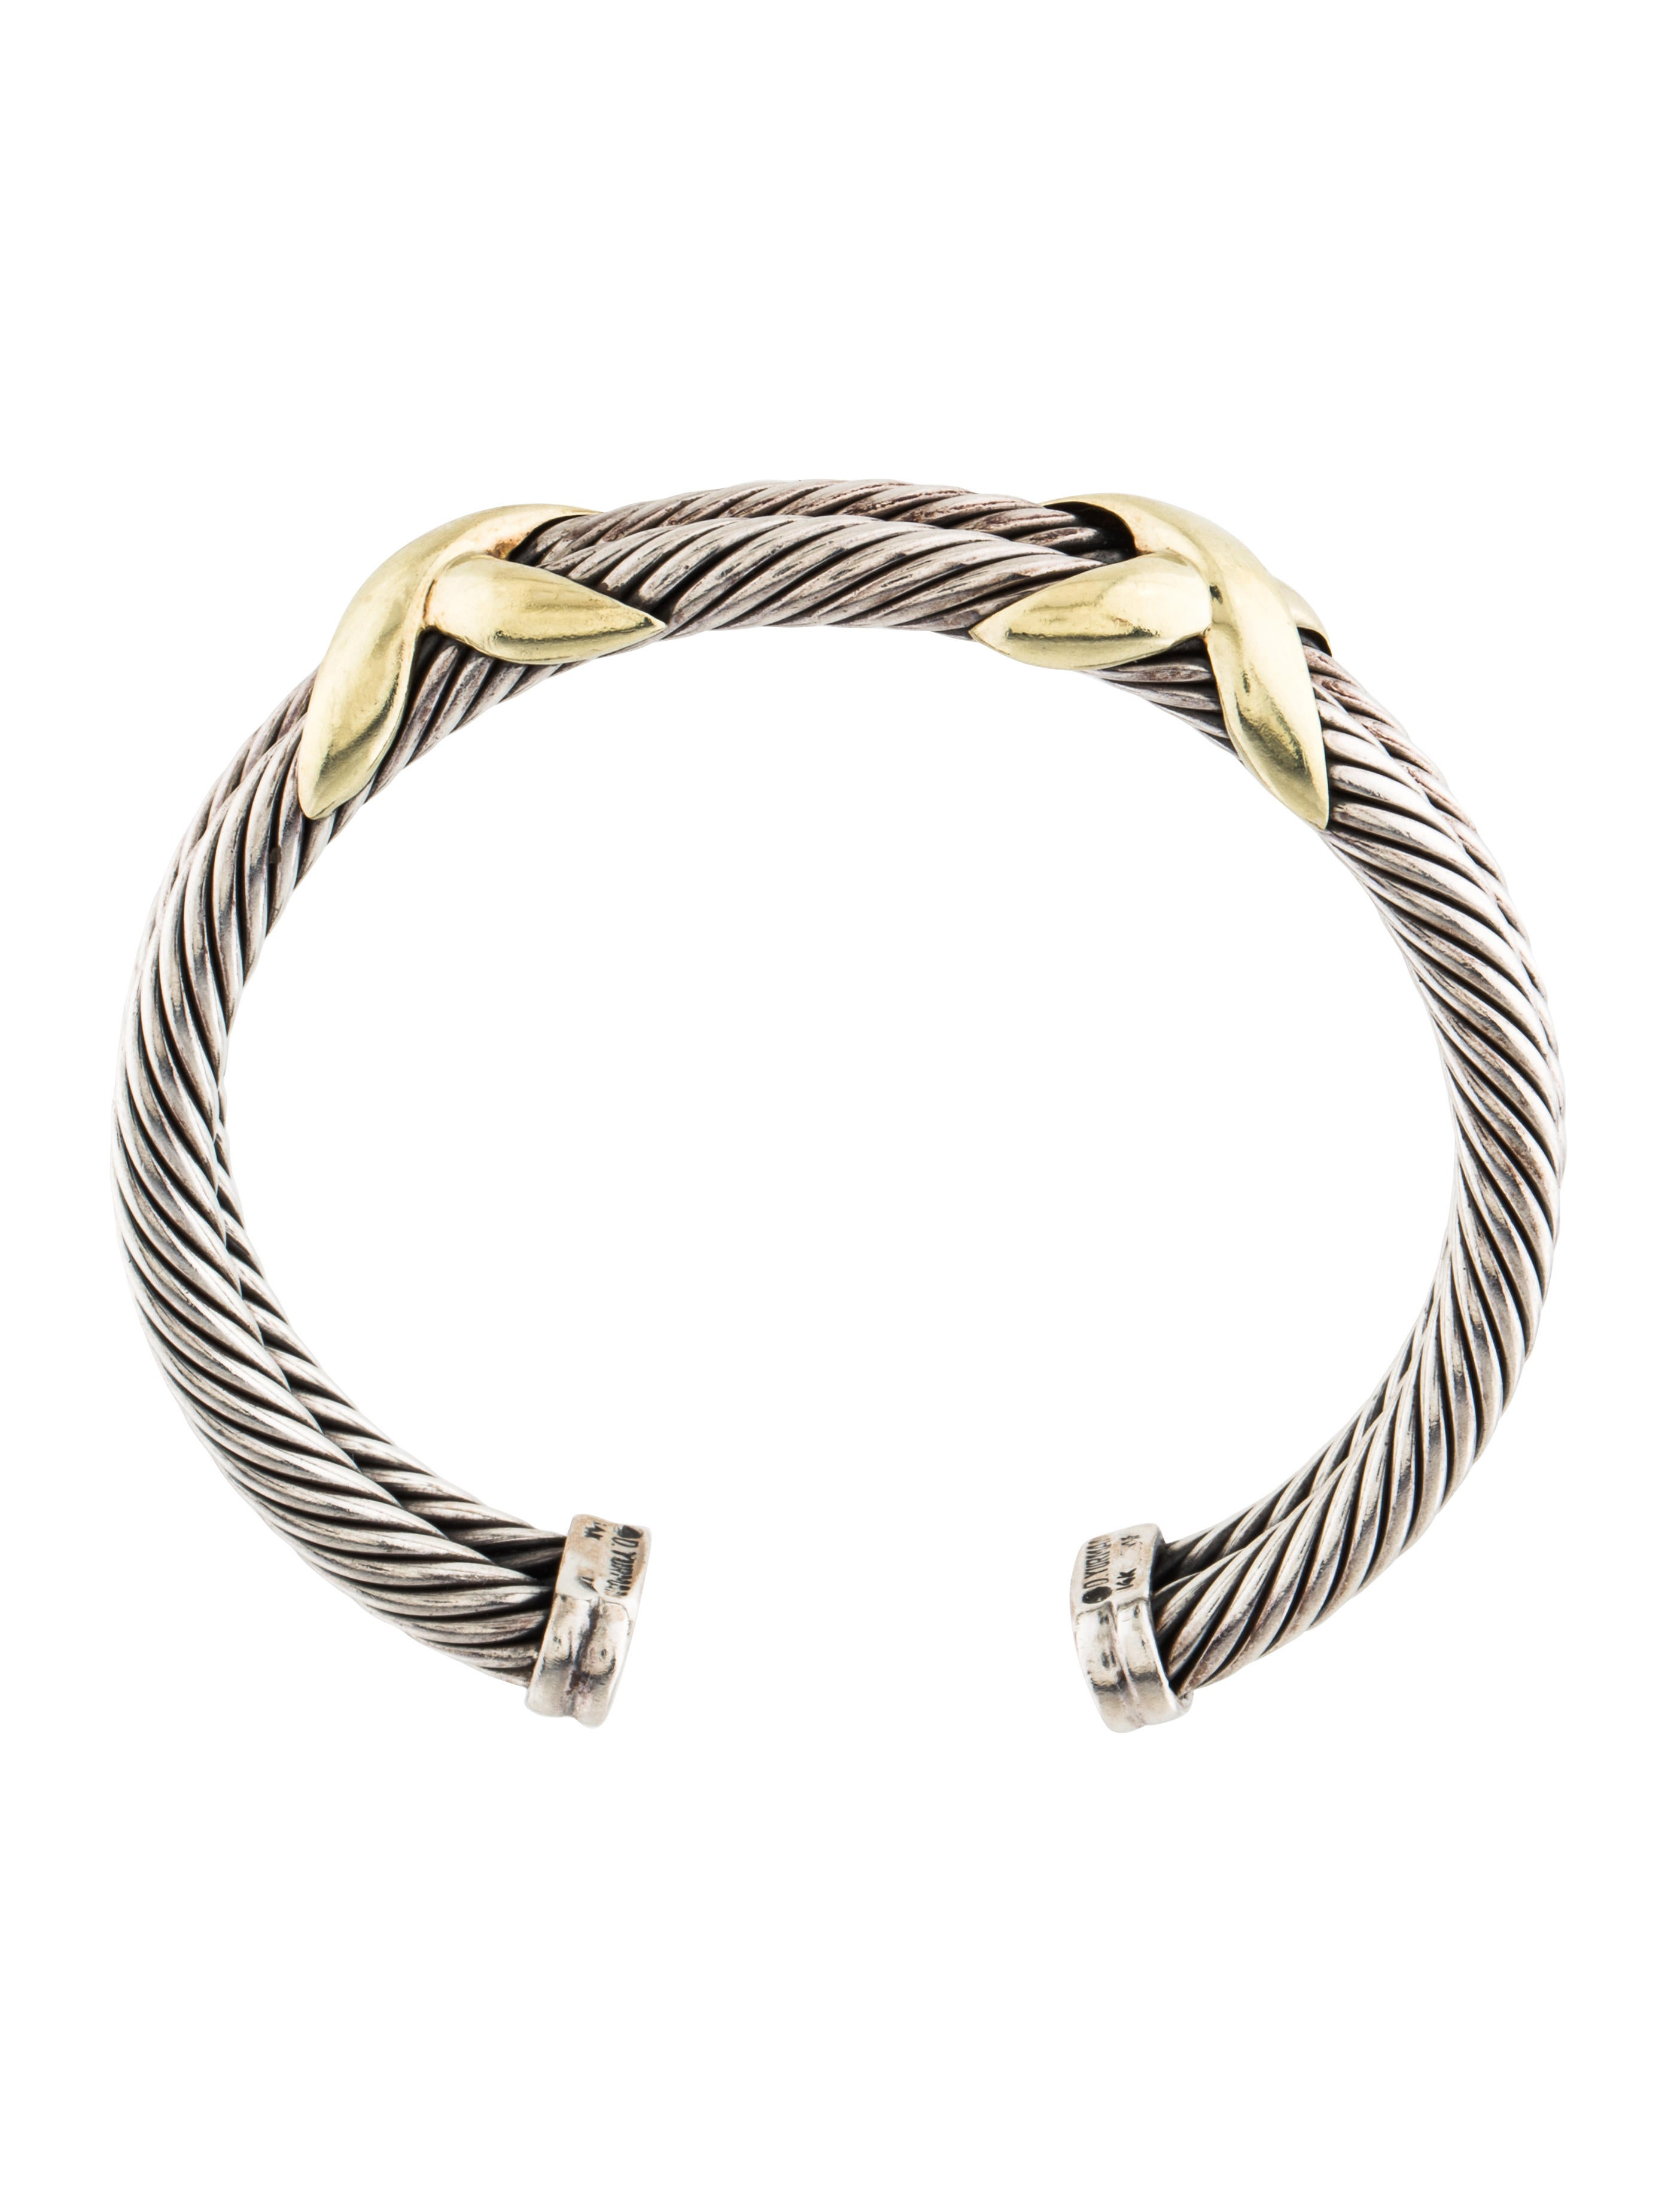 David yurman cable classics double x cuff bracelet for David yurman inspired bracelet cable